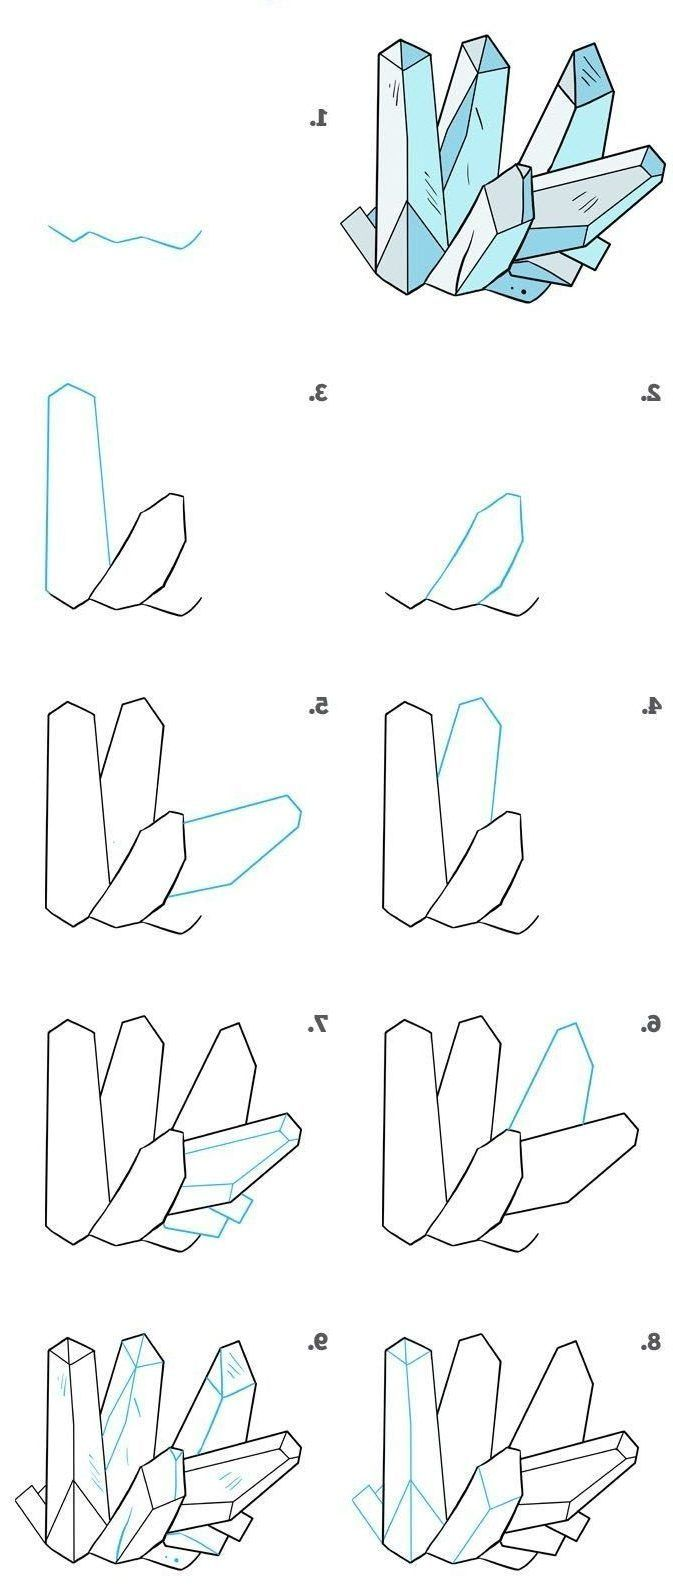 20 Easy Drawing Tutorials For Beginners Cool Things To Draw Step By Step Do It Befor Drawing Tutorial Easy Drawing Tutorials For Beginners Drawing Tutorial